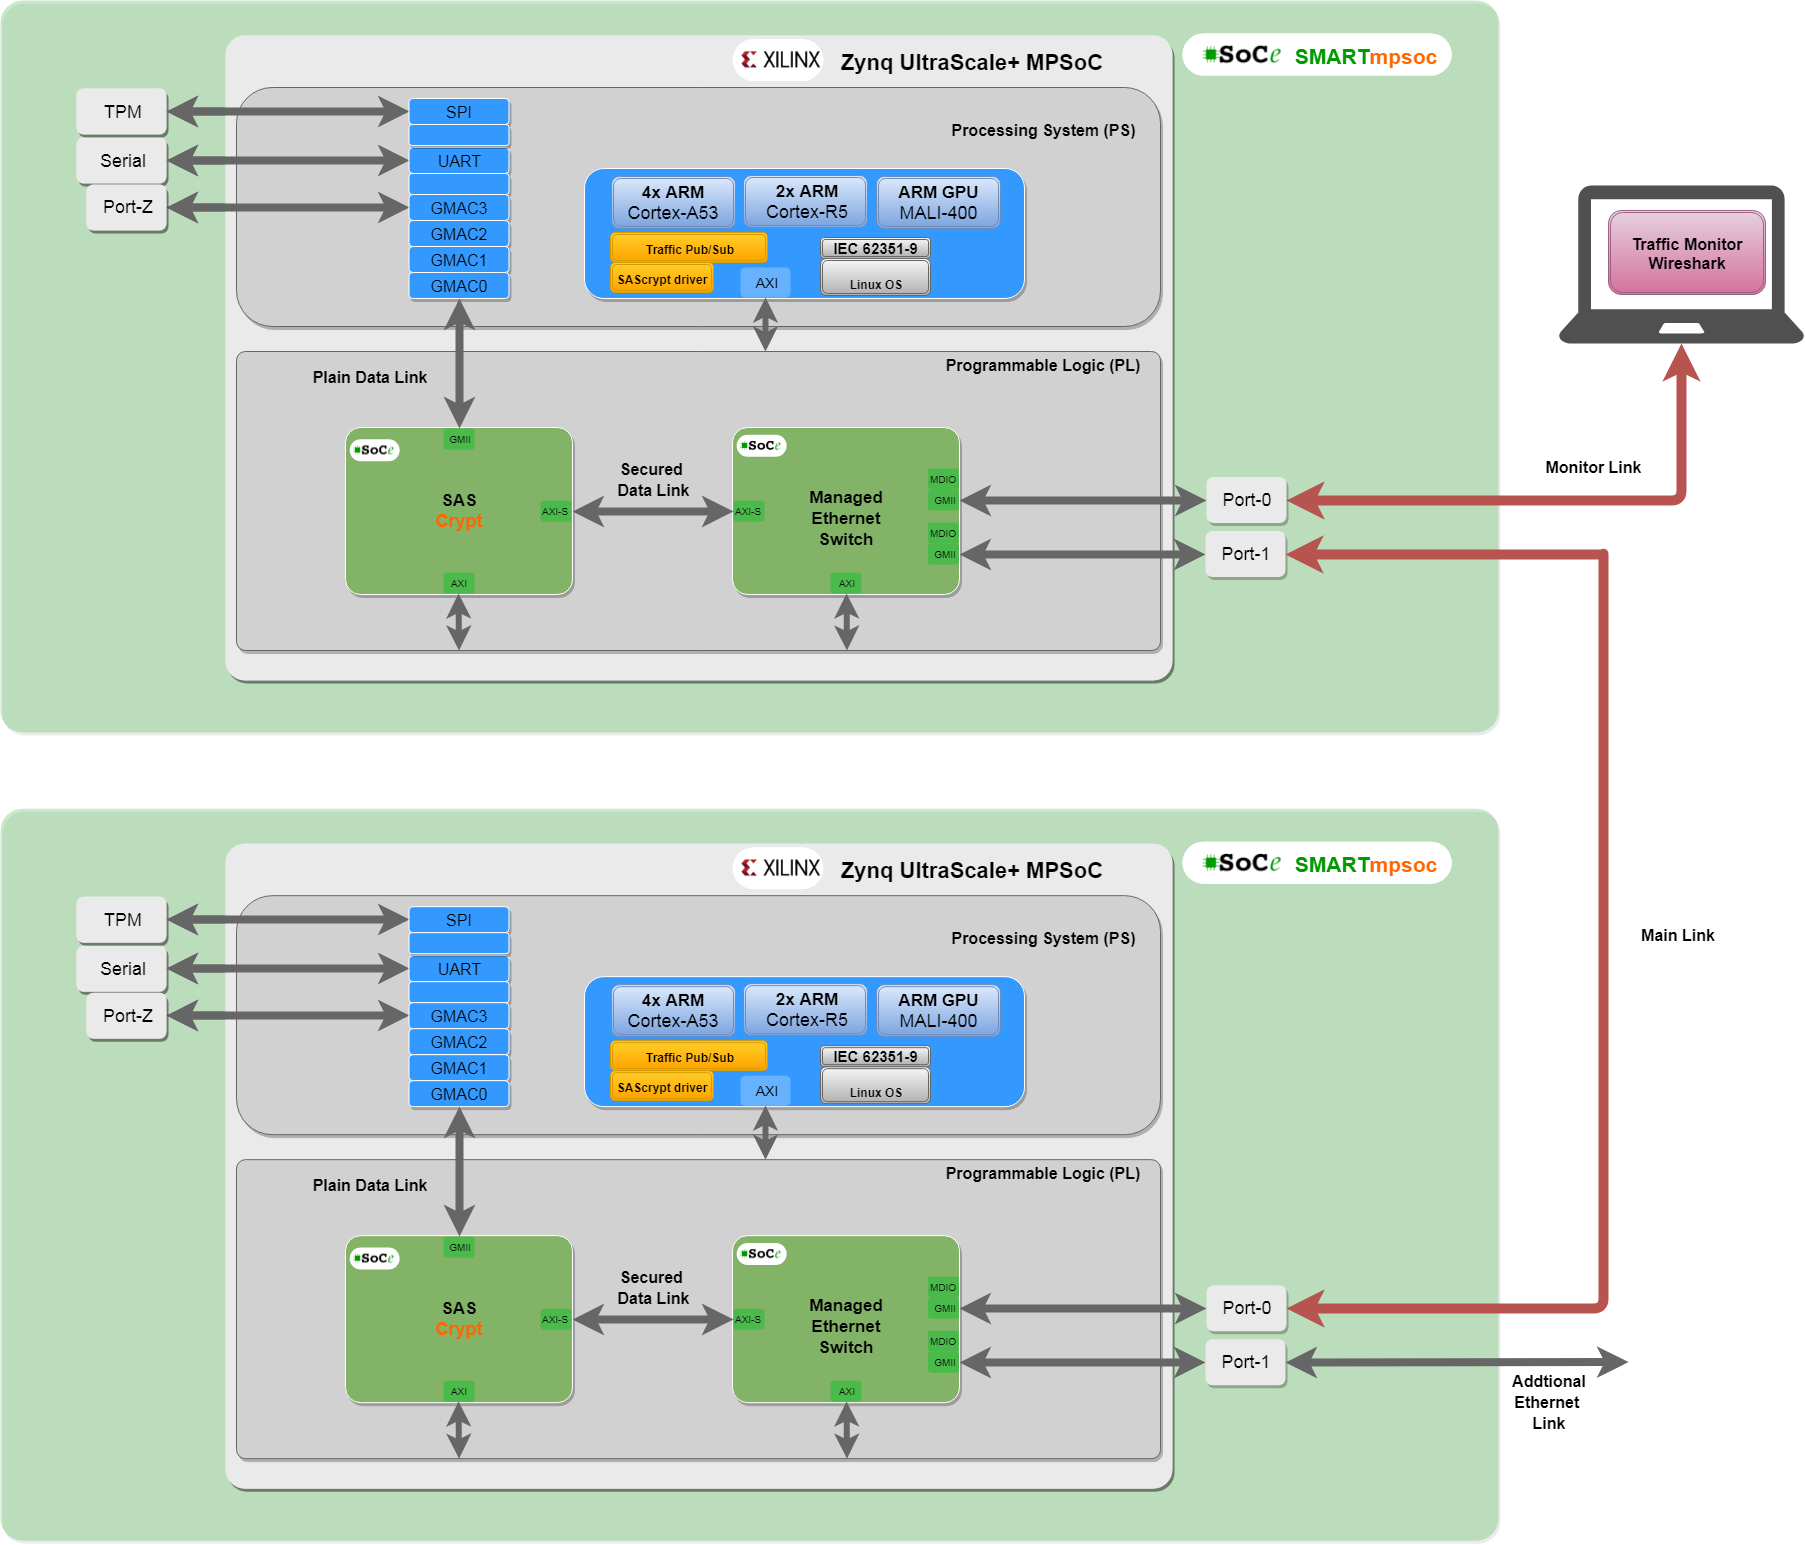 Sascrypt Kit Wire Speed Security For Iec 62351 6 9 61850 Ethernet Ip Wiring Diagram Get Free Image About The Also Communicates With Ps Section Through A Dedicated Axi4 Interface Driver Links Key Management Protocols